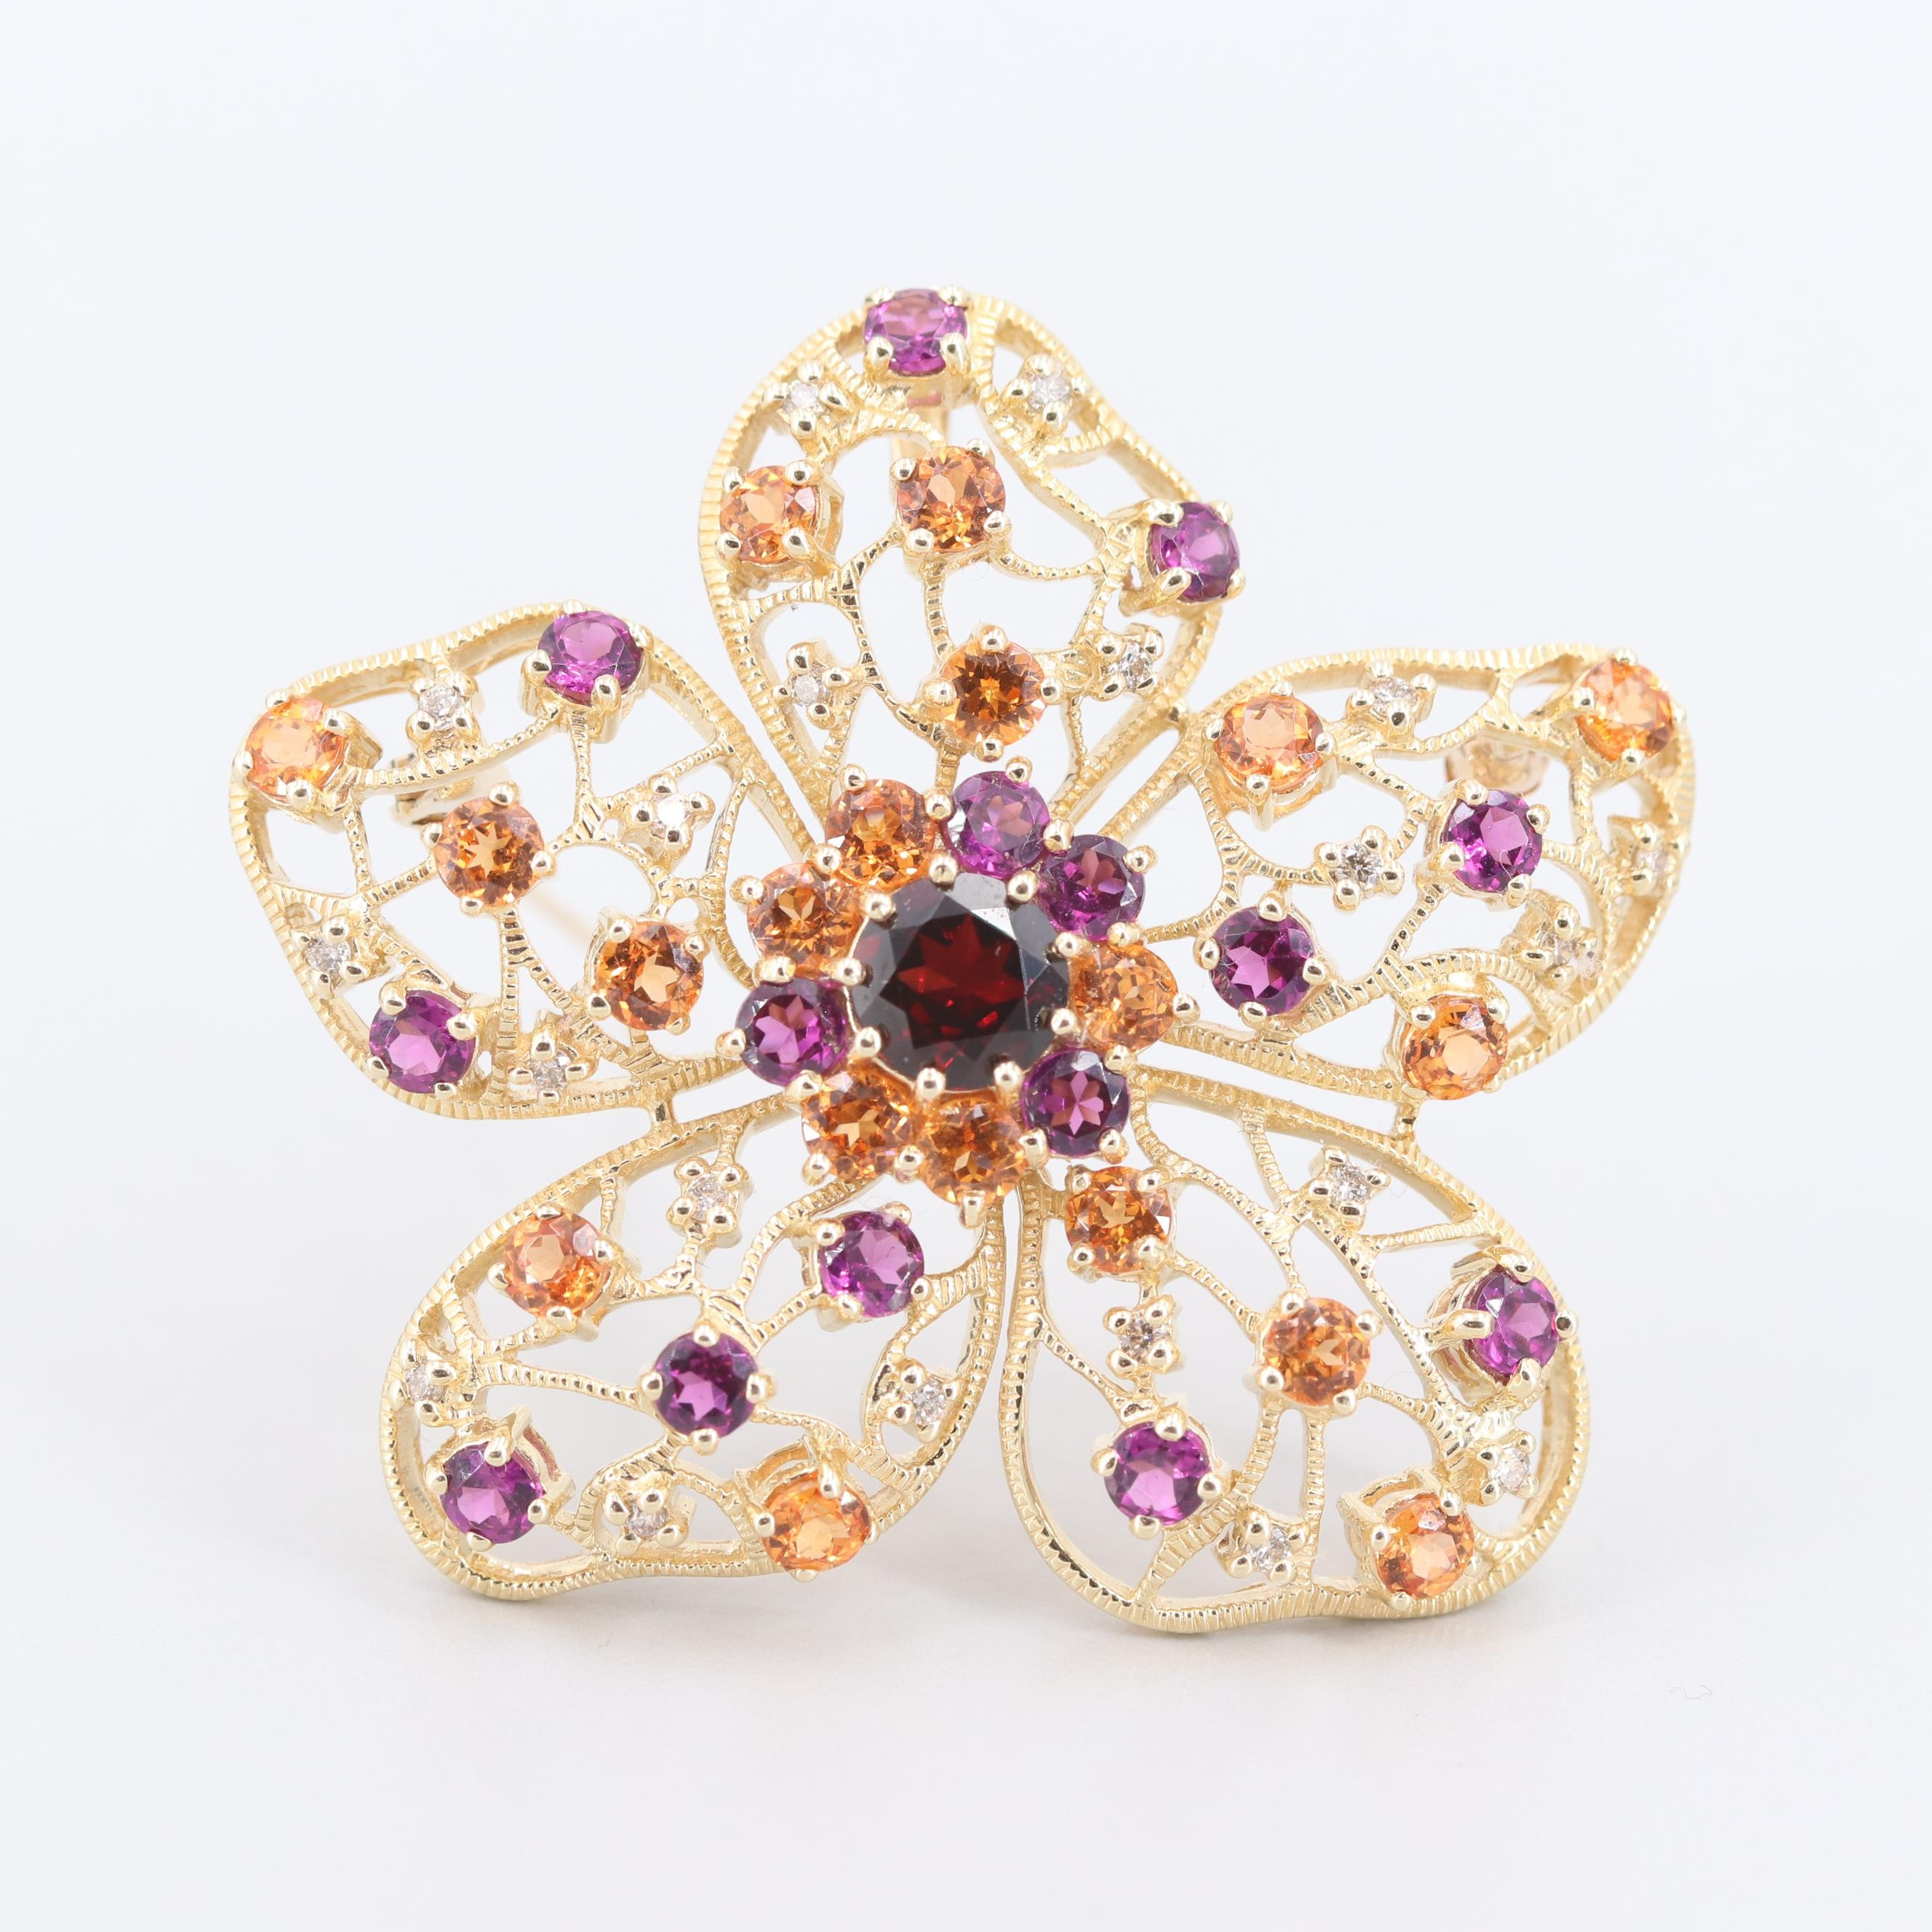 14K Yellow Gold Pyrope, Spessartine, Rhodolite and Diamond Converter Brooch